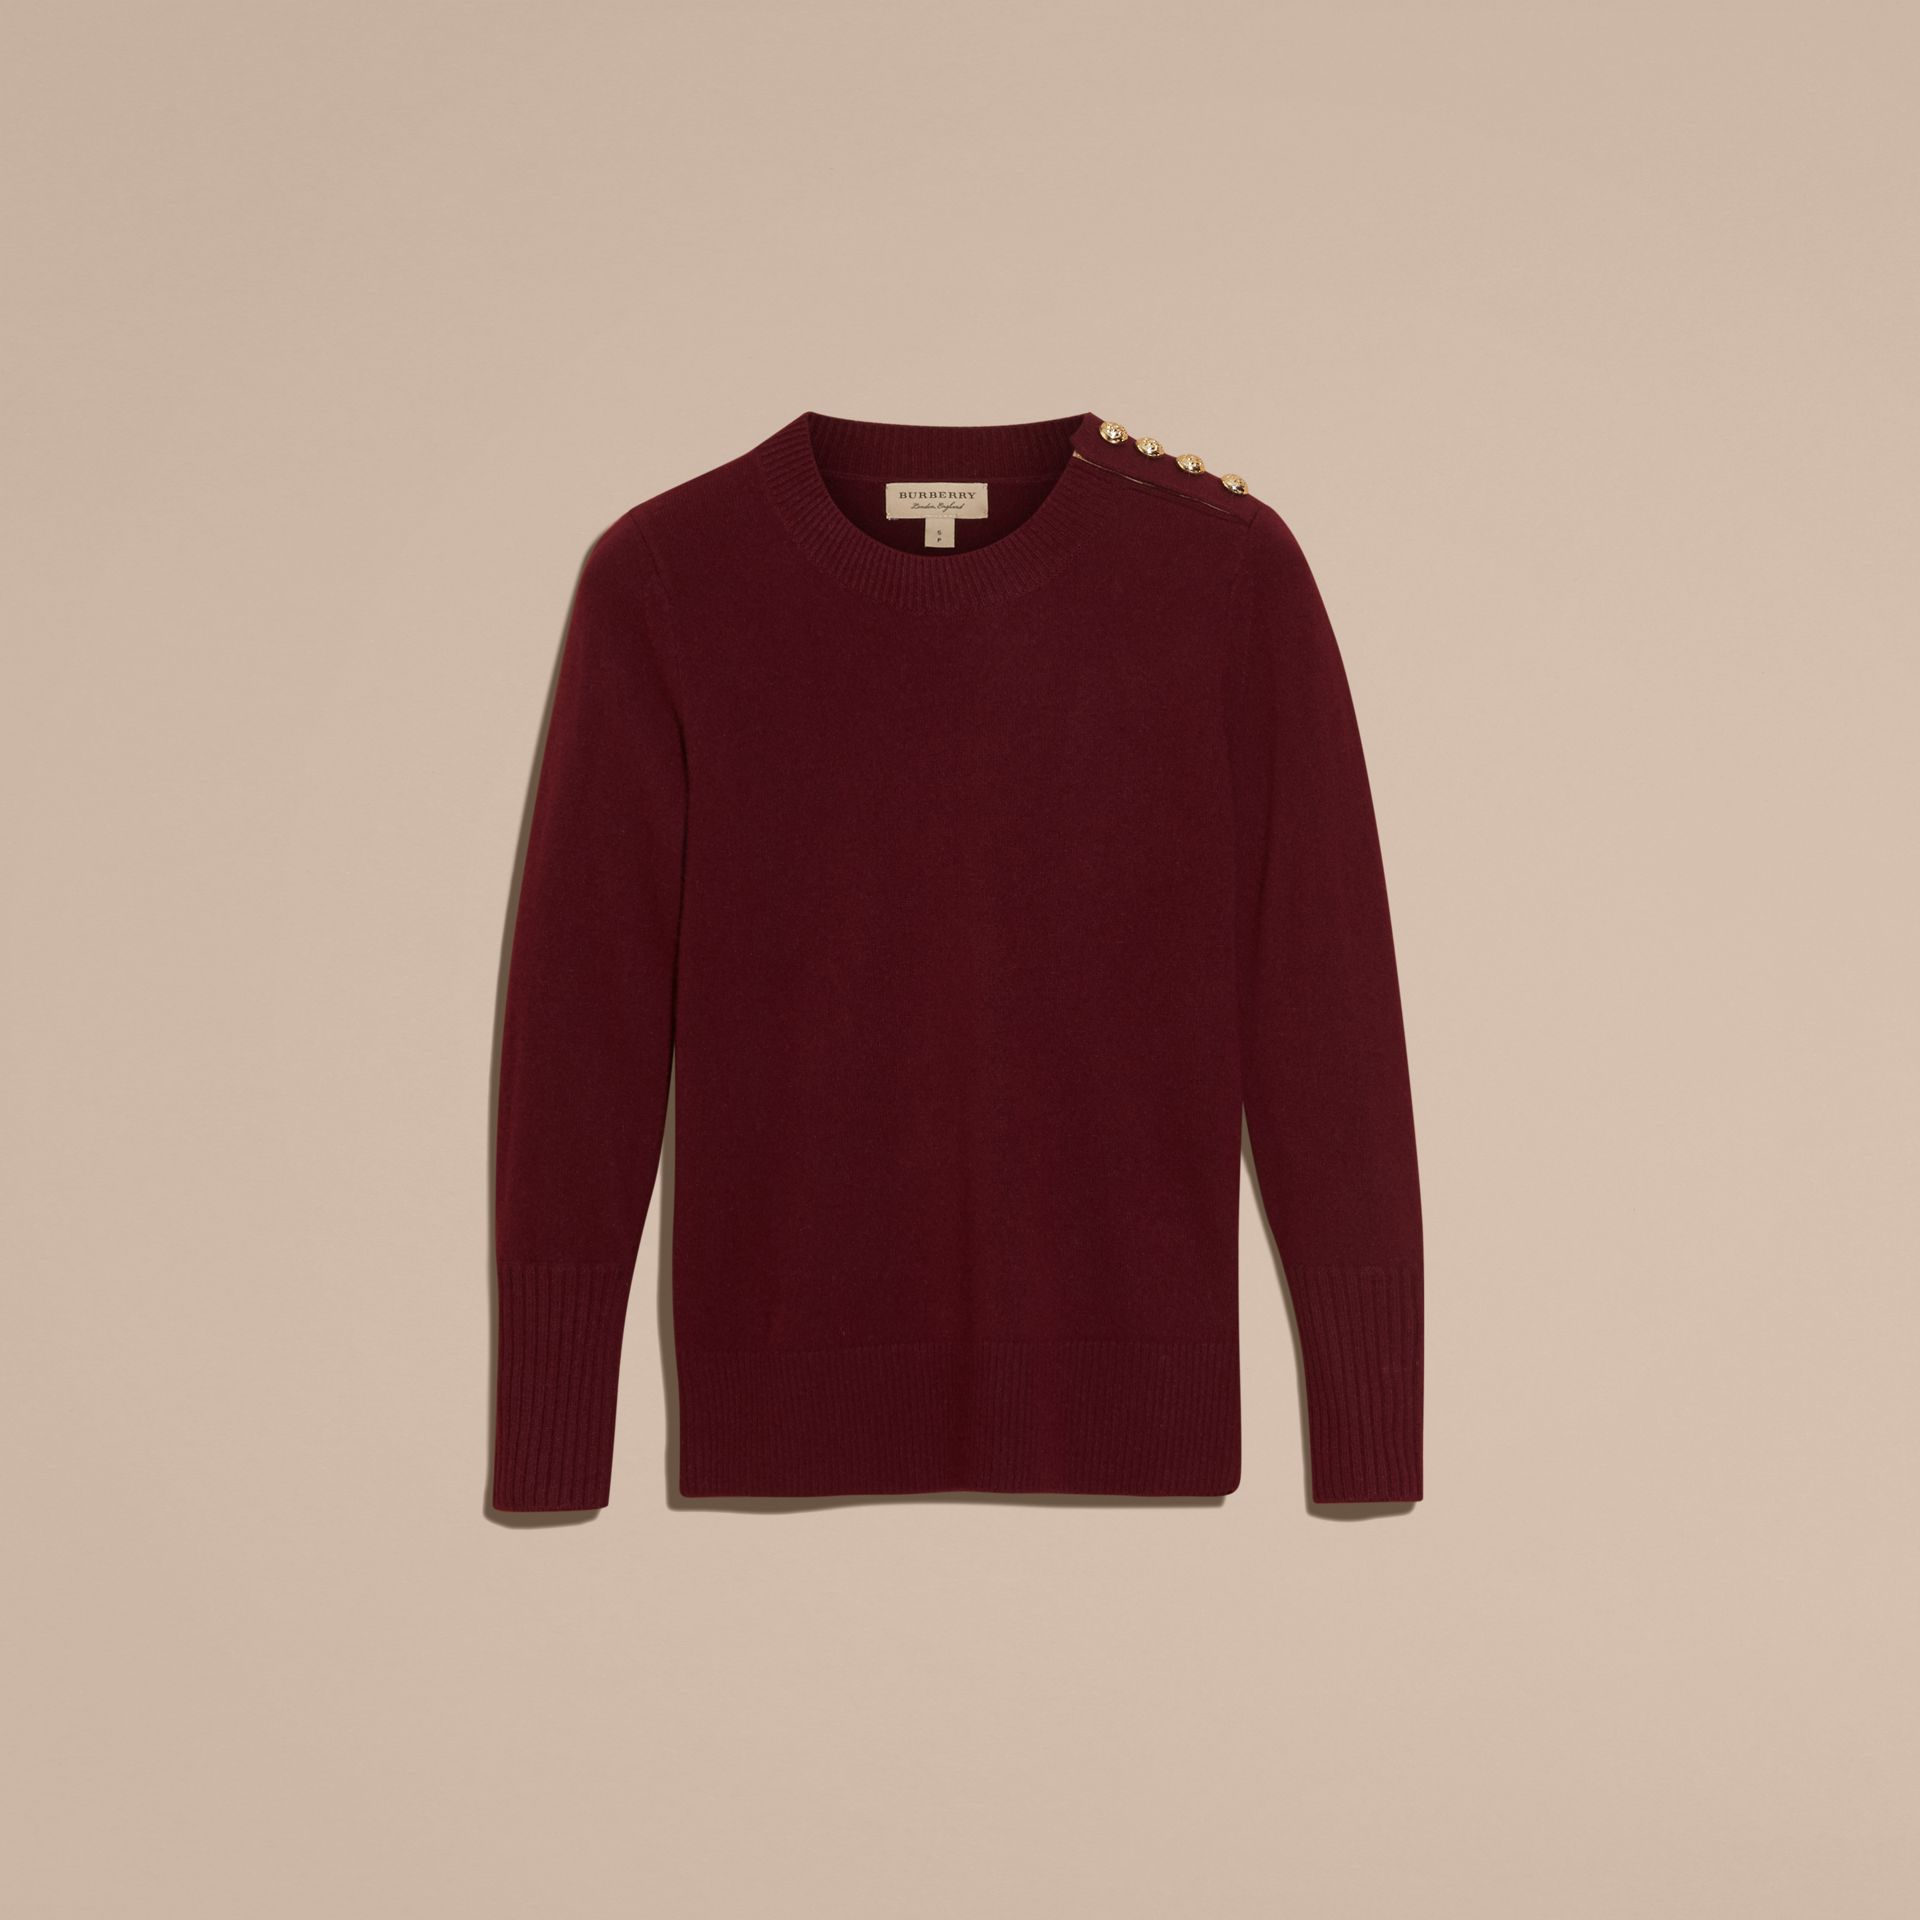 Mahogany red Cashmere Sweater with Crested Buttons Mahogany Red - gallery image 4